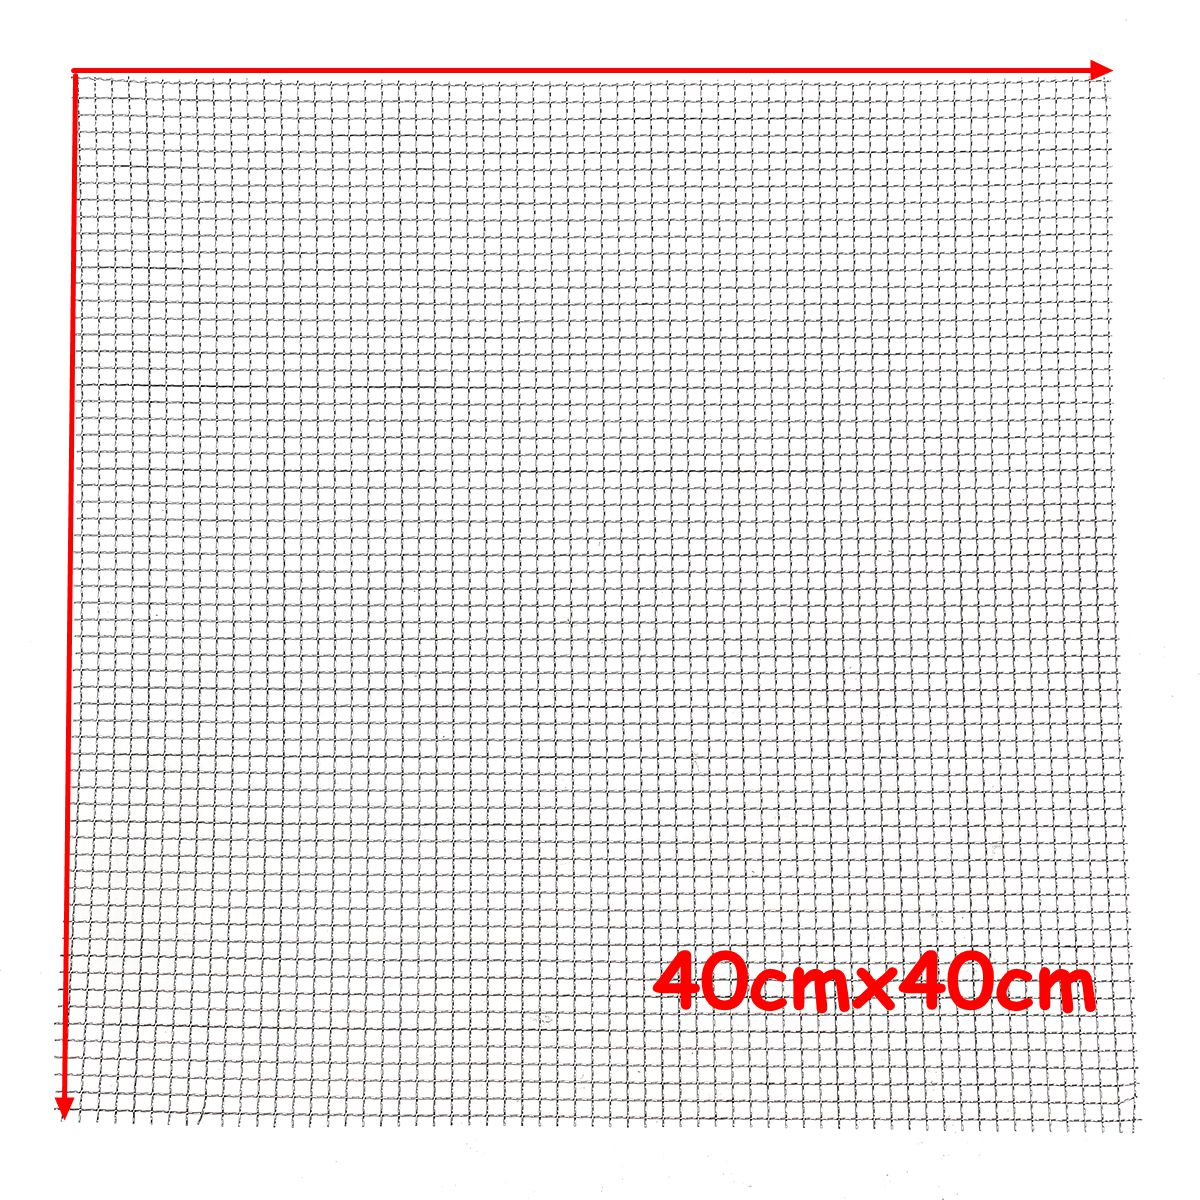 NEW Stainless Steel 304 Mesh #4 .047 Wire Cloth Screen Filter 16''x16'' 40cm x 40cm sbart spearfishing wetsuits 3mm neoprene surfing suit wetsuit camo swimming fishing wetsuits camouflage diving wet suit swimming